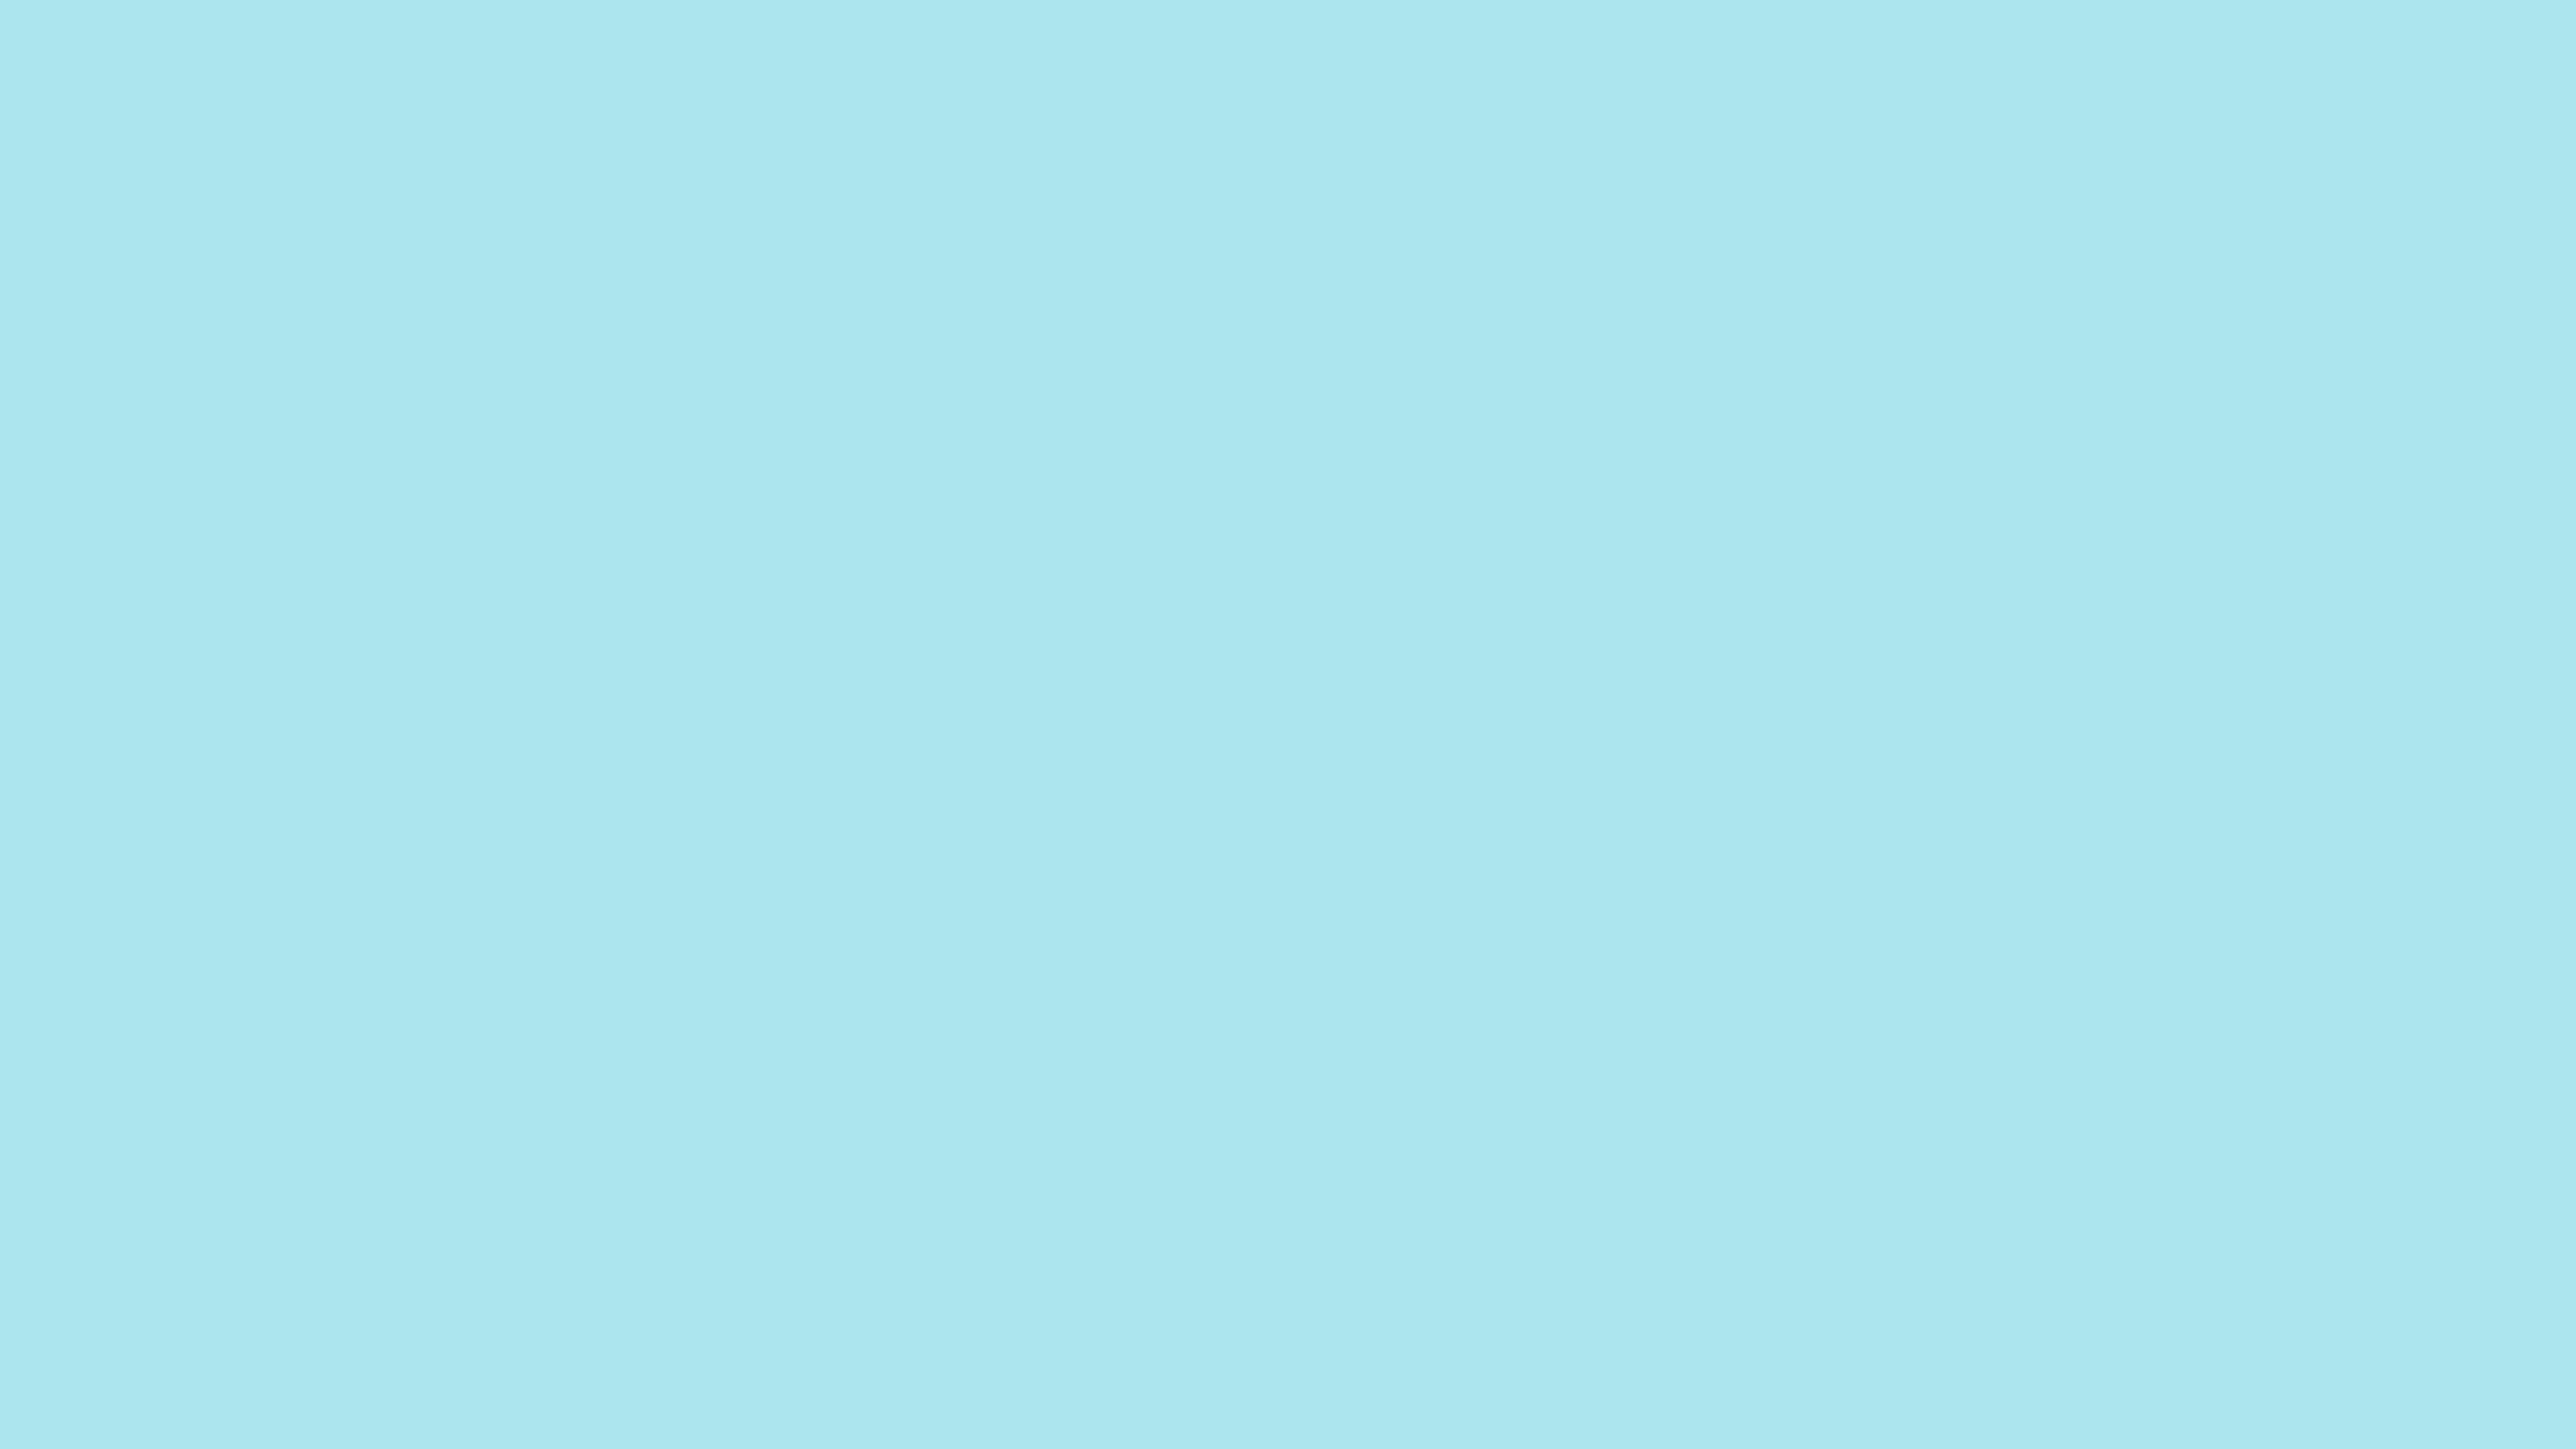 4096x2304 Blizzard Blue Solid Color Background